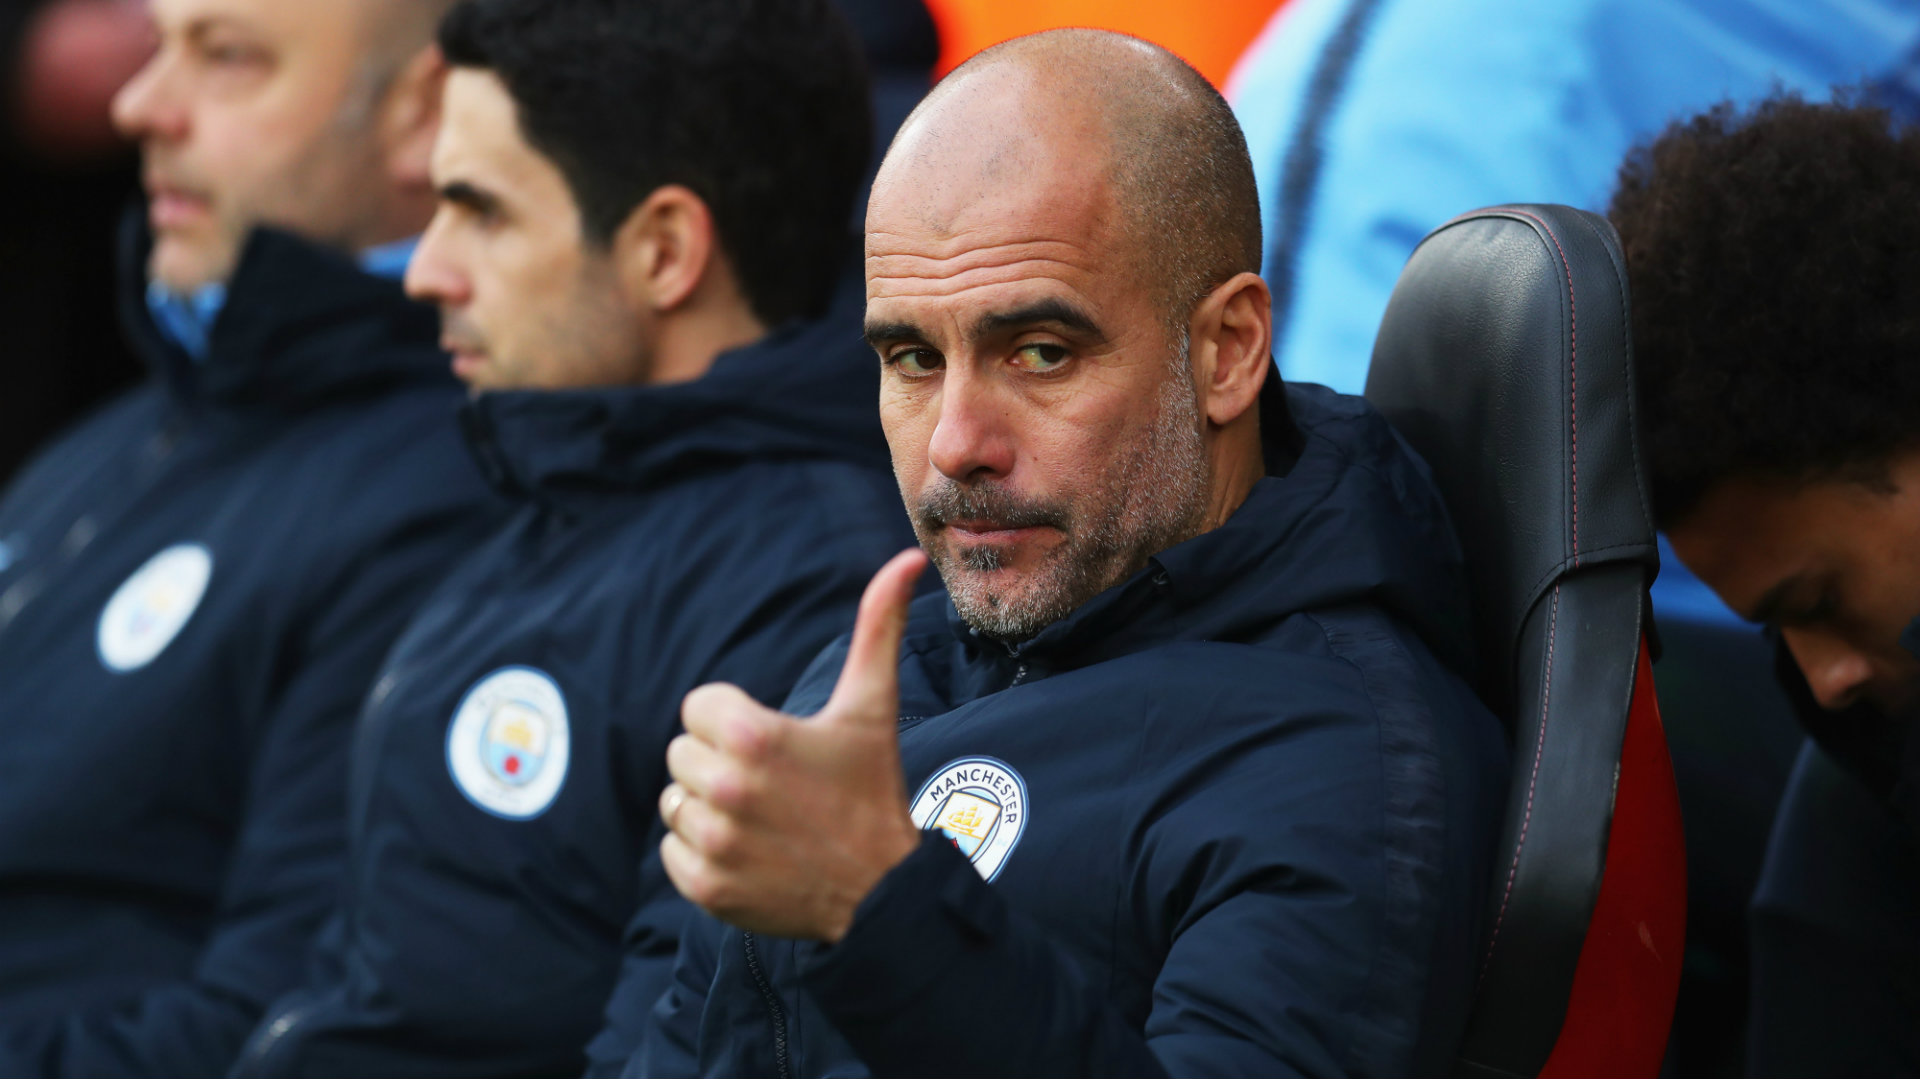 Man City vs Wolves: Game-changer Pep Guardiola billed as all-time great manager by Premier League rival Nuno - Goal.com - wolves, premier, manager, guardiola, great, changer, billed